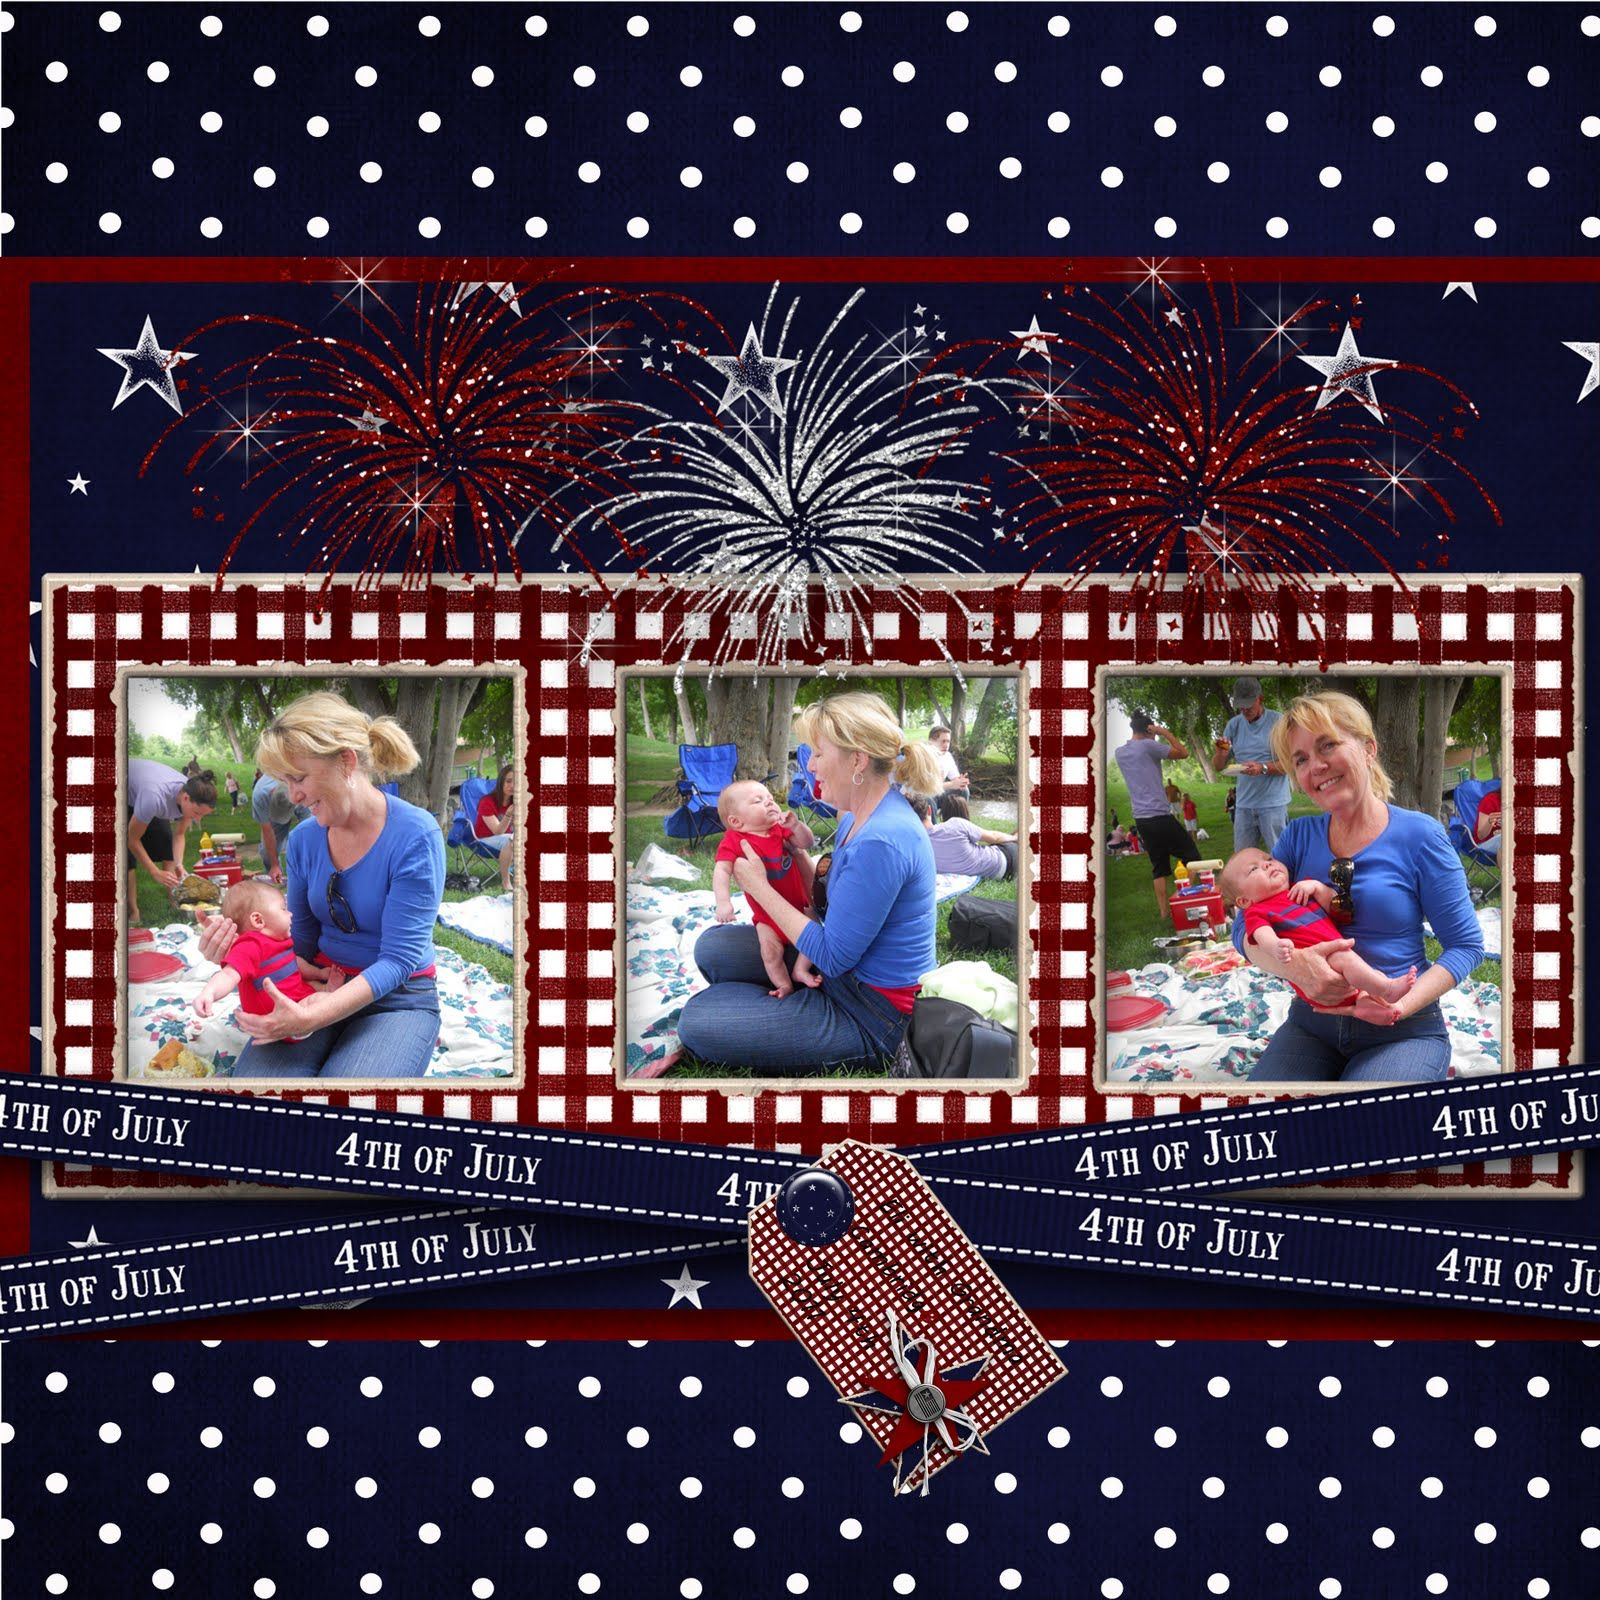 Scrapbook ideas with ribbon - 4th Of July Scrapbook Layout Idea Like The Criss Crossed Ribbon